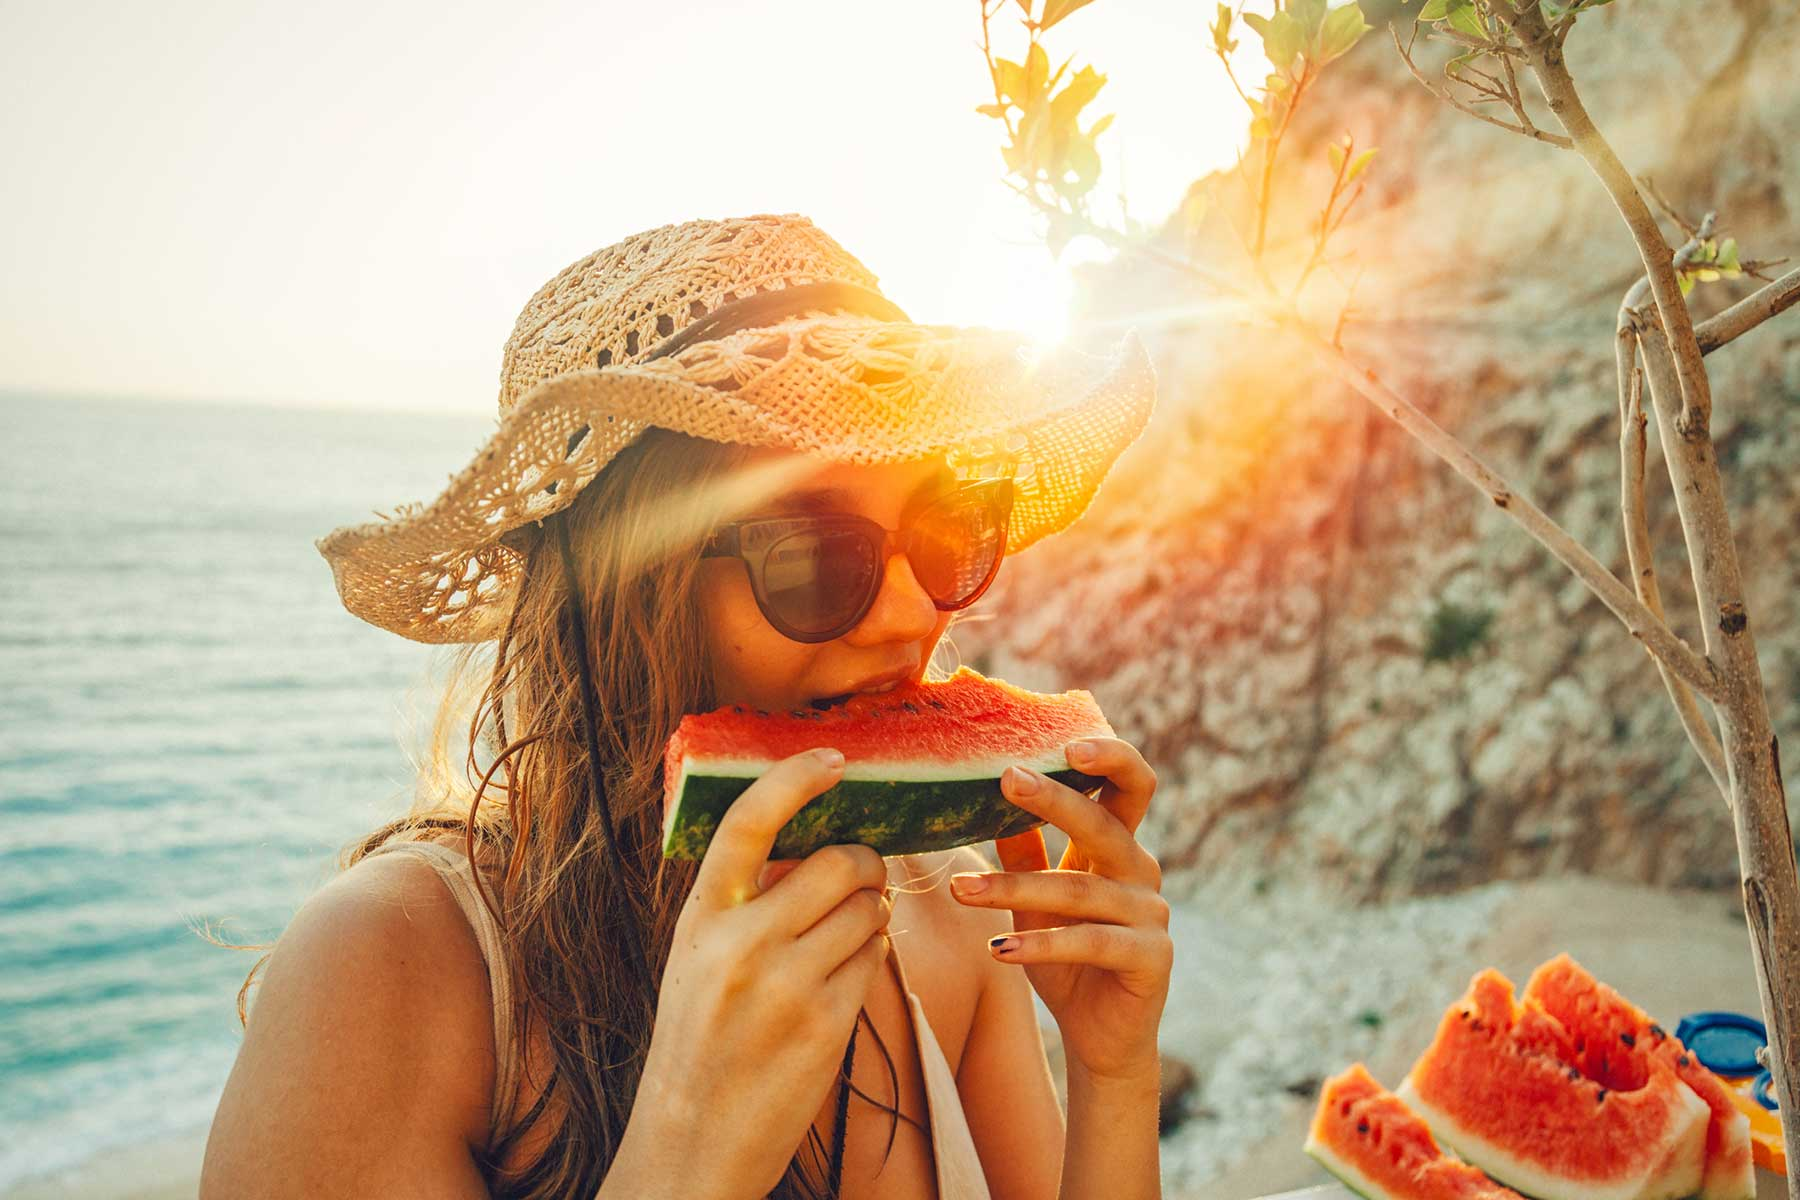 Healthy tips for summertime adventures